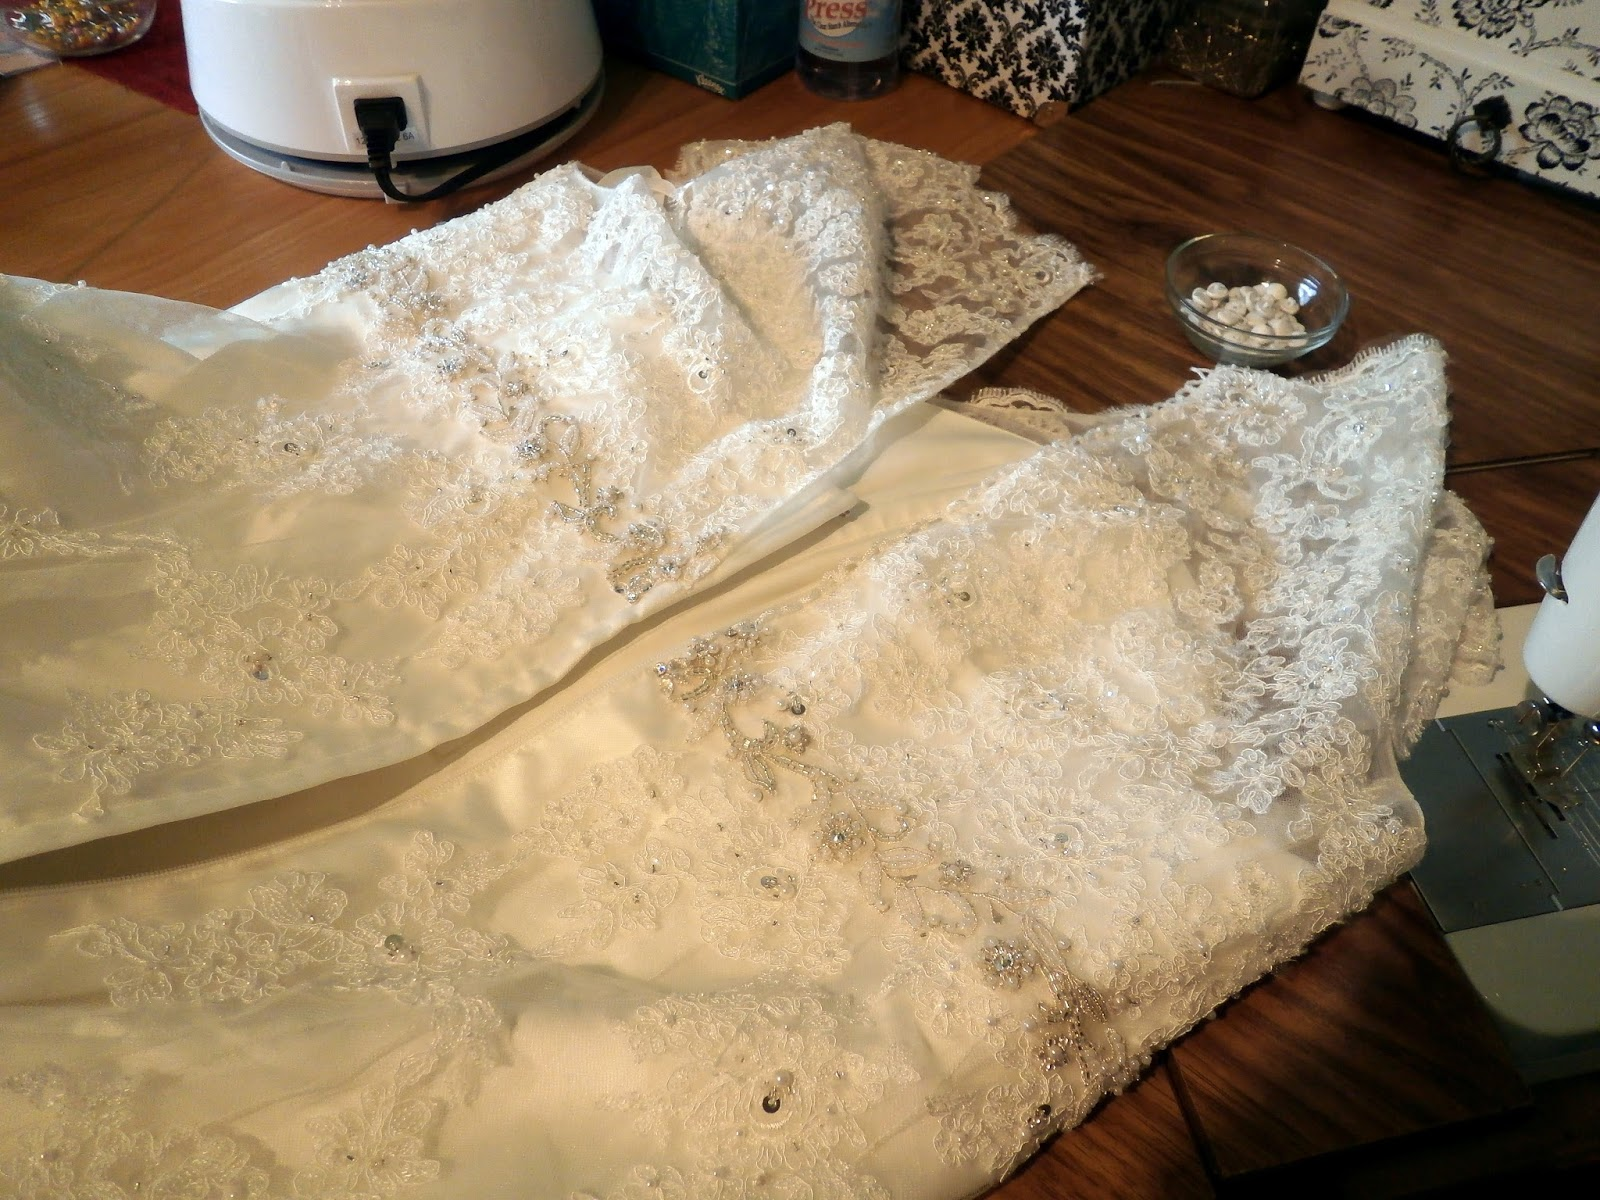 Pamelaquilts: Adding a Corset back to a Wedding gown